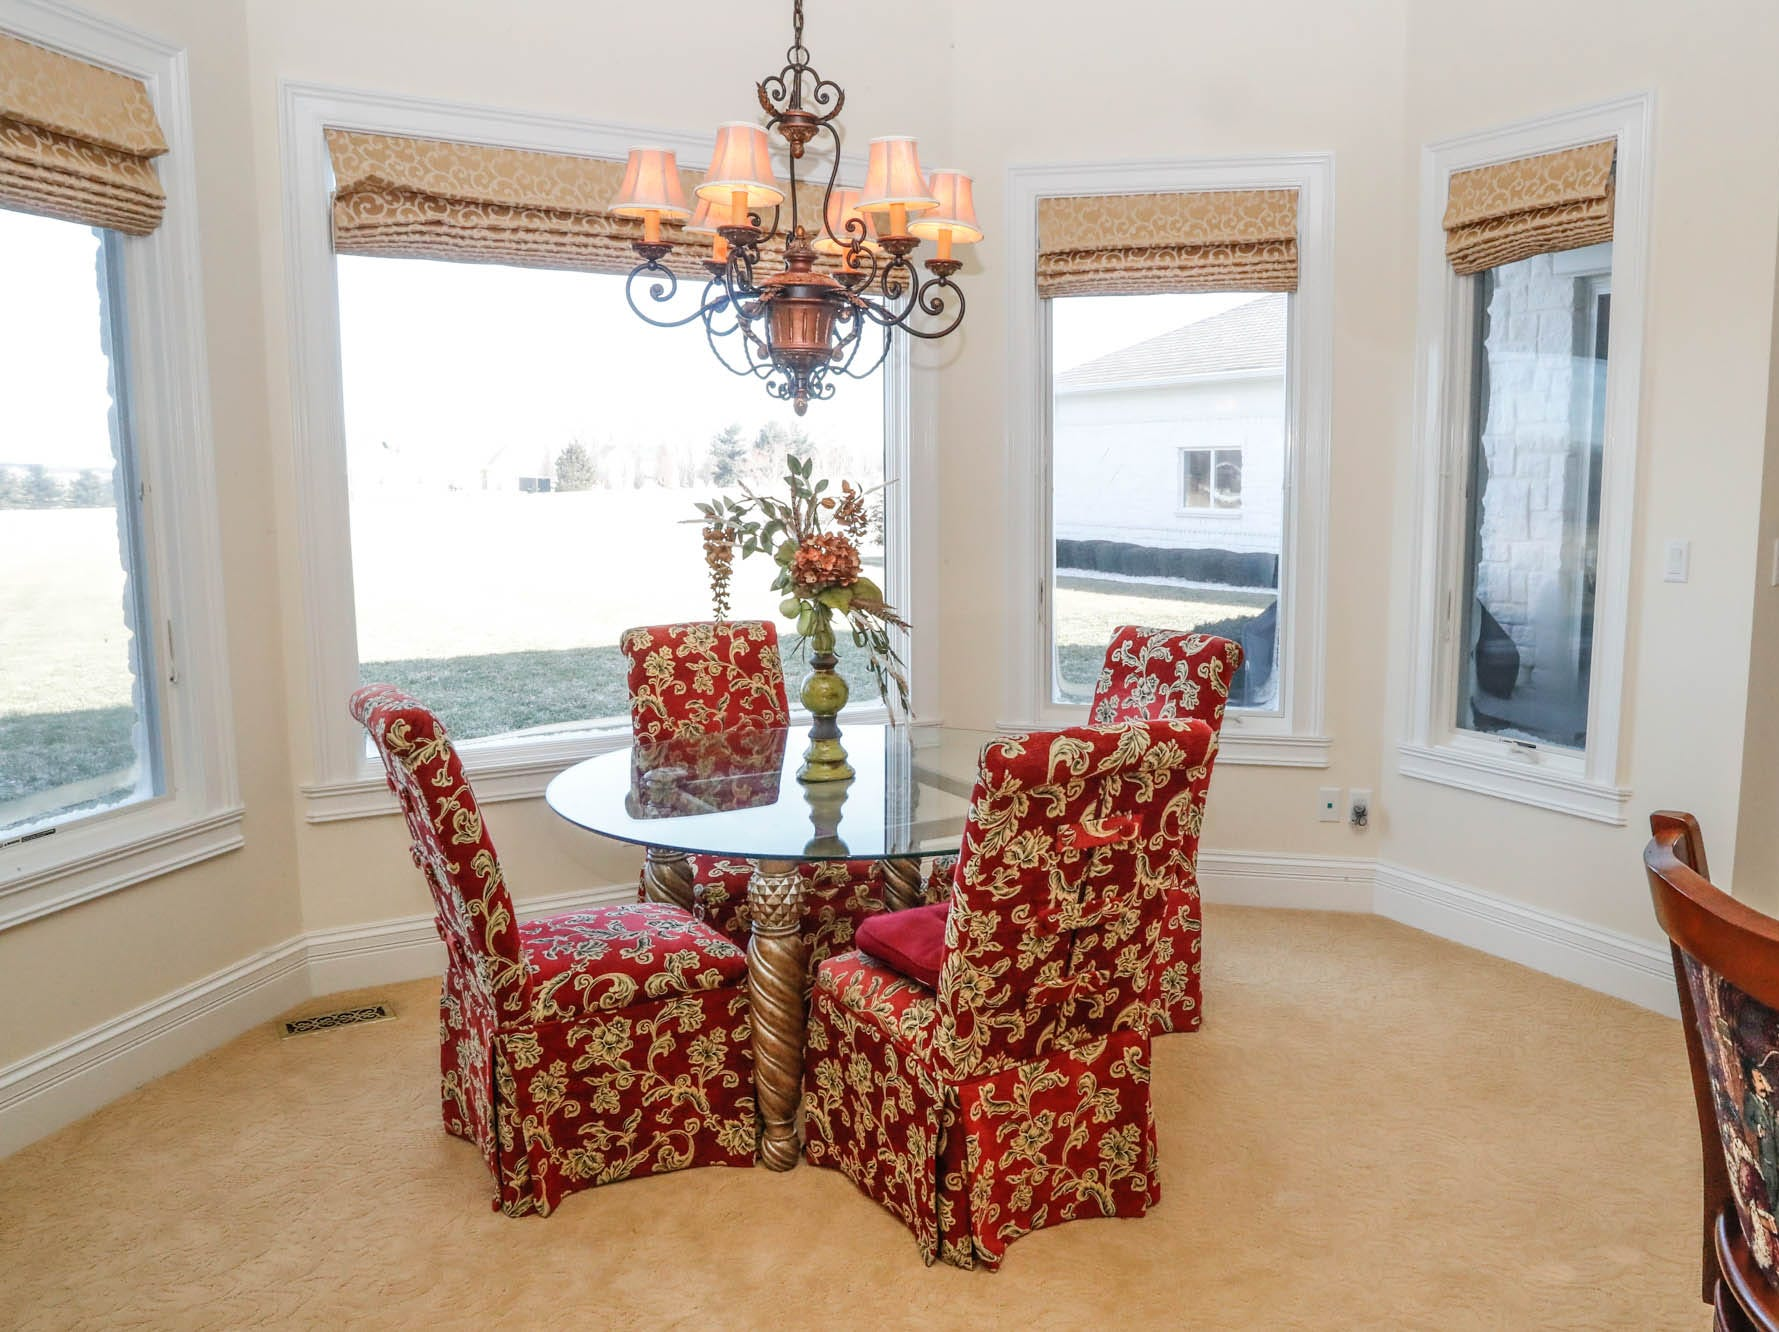 A breakfast nook overlooks over six acres of property at a Greenwood home up for sale at 1216 Stone Ridge Court, Greenwood, Ind. on Wednesday, Jan. 30, 2019. The home features 8,234 square feet, four bedrooms, two master suits, a 10 car garage, and exercise room.